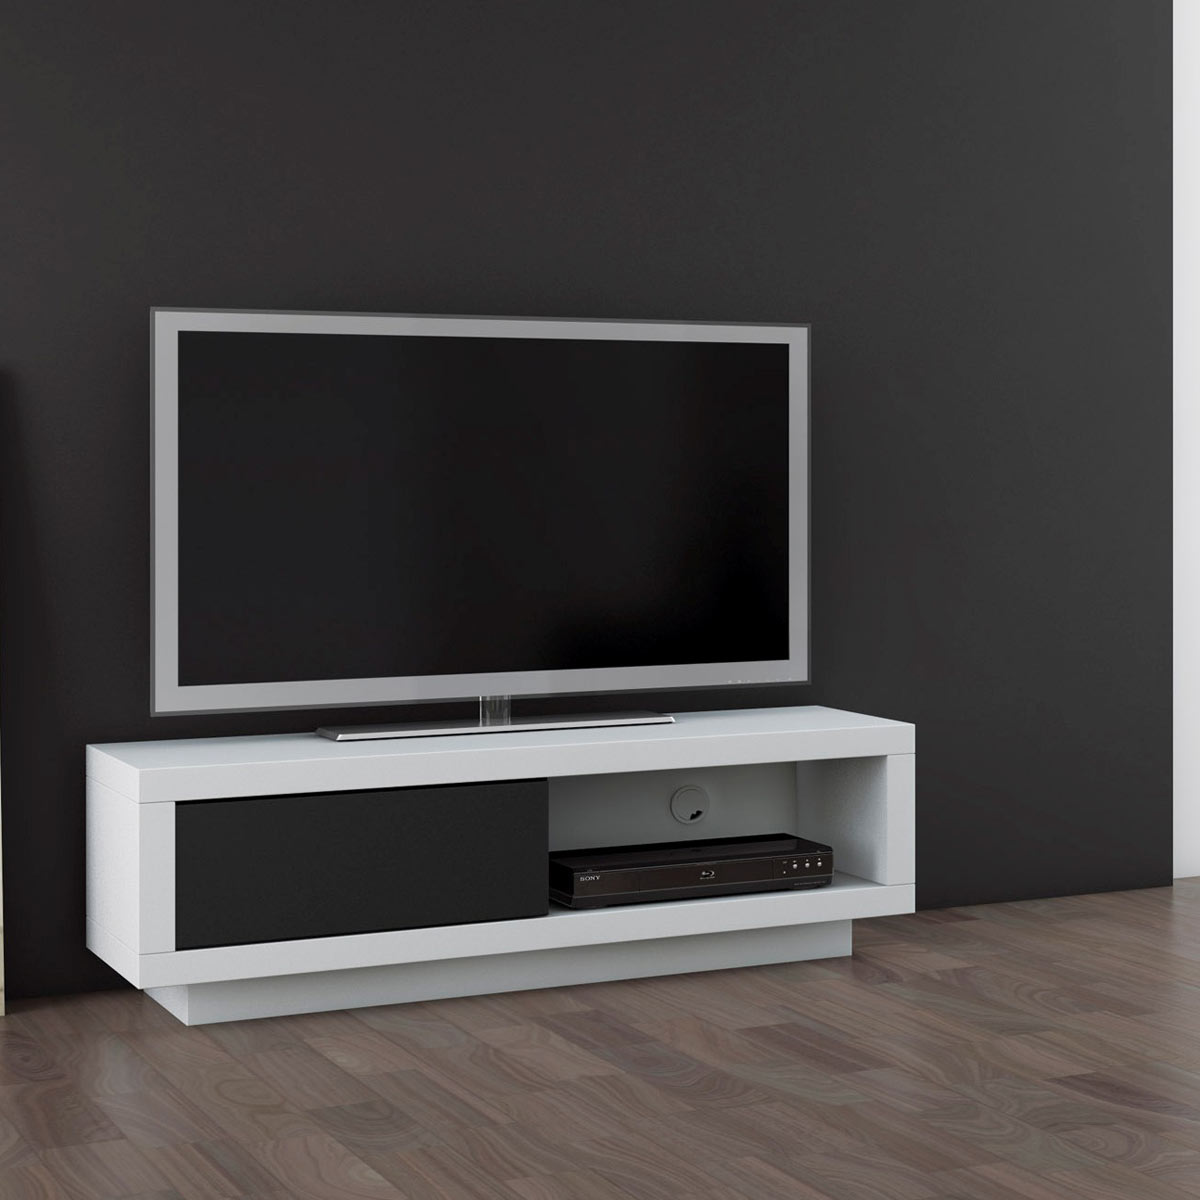 schnepel varic l blanc avec clapet meuble tv schnepel. Black Bedroom Furniture Sets. Home Design Ideas